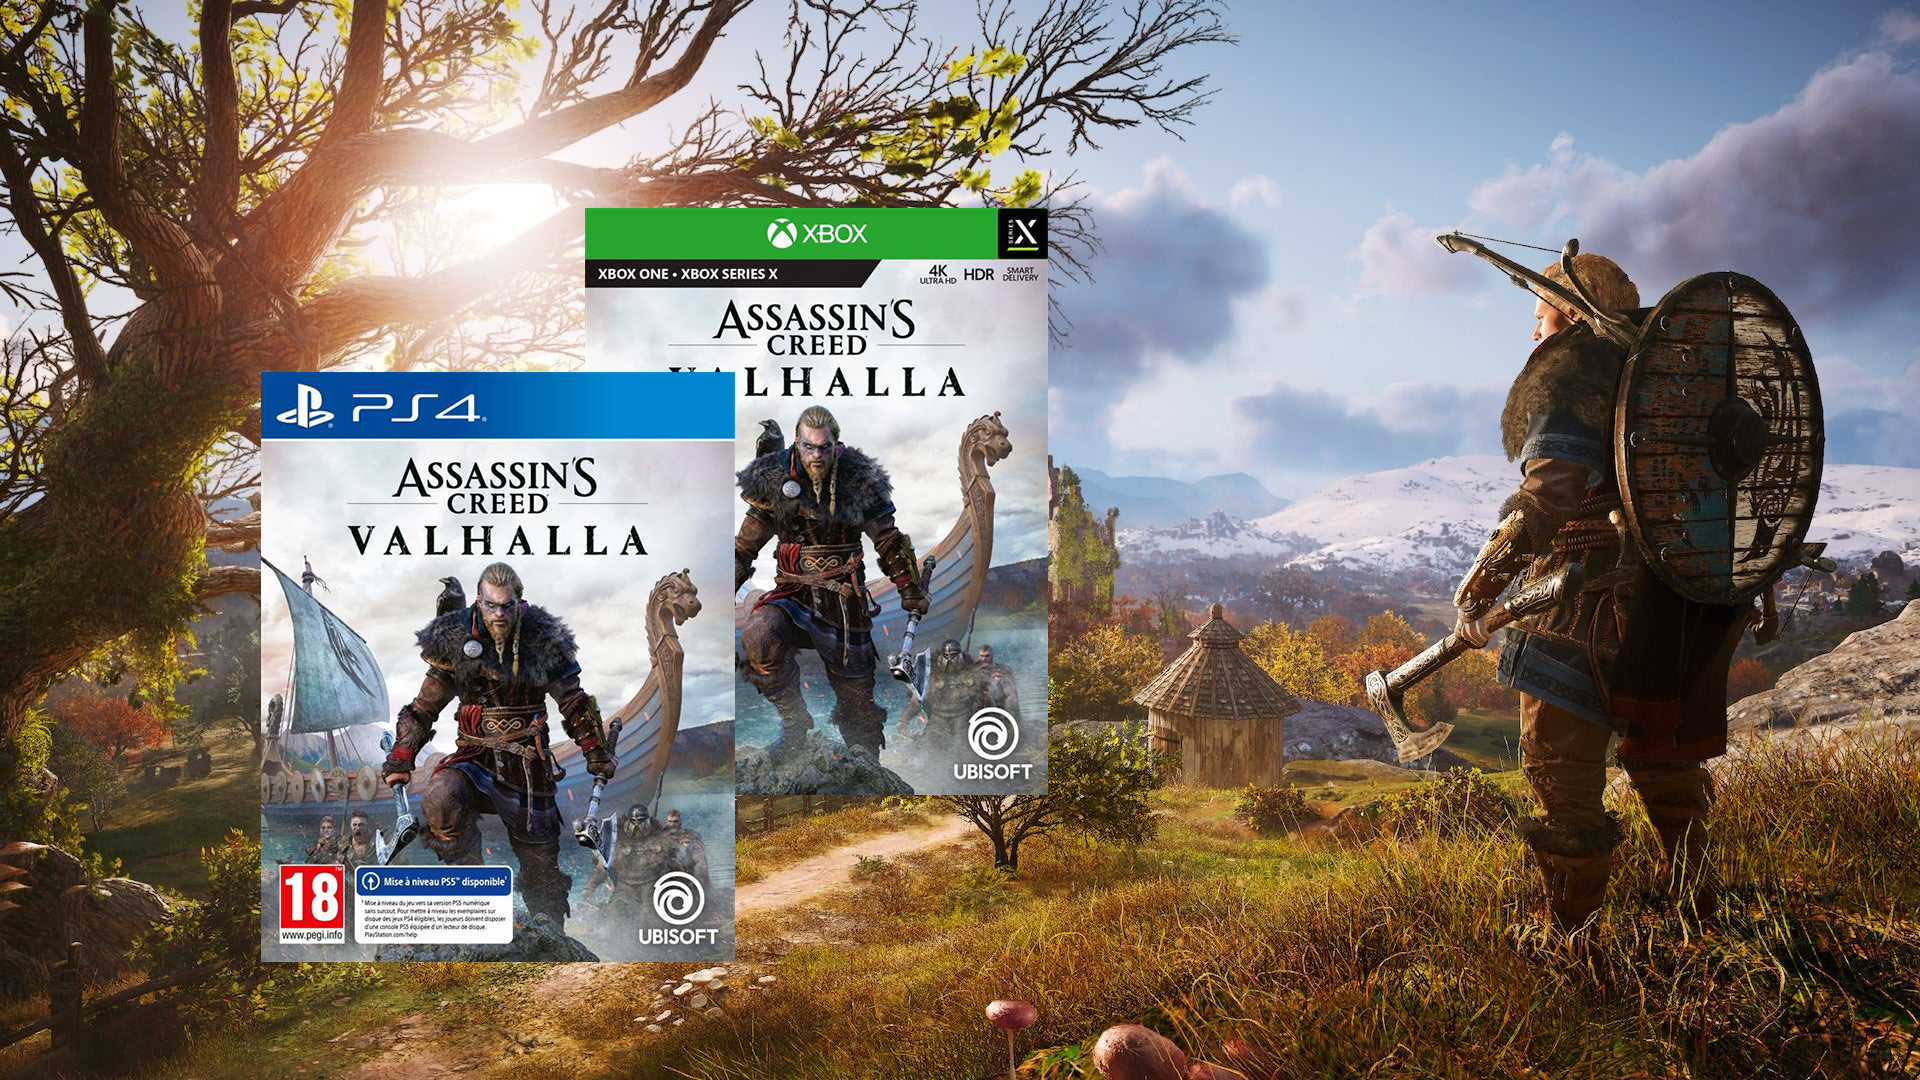 While waiting for Chivalry II: Assassin's Creed Valhalla on PS4 and Xbox Series X at -36%